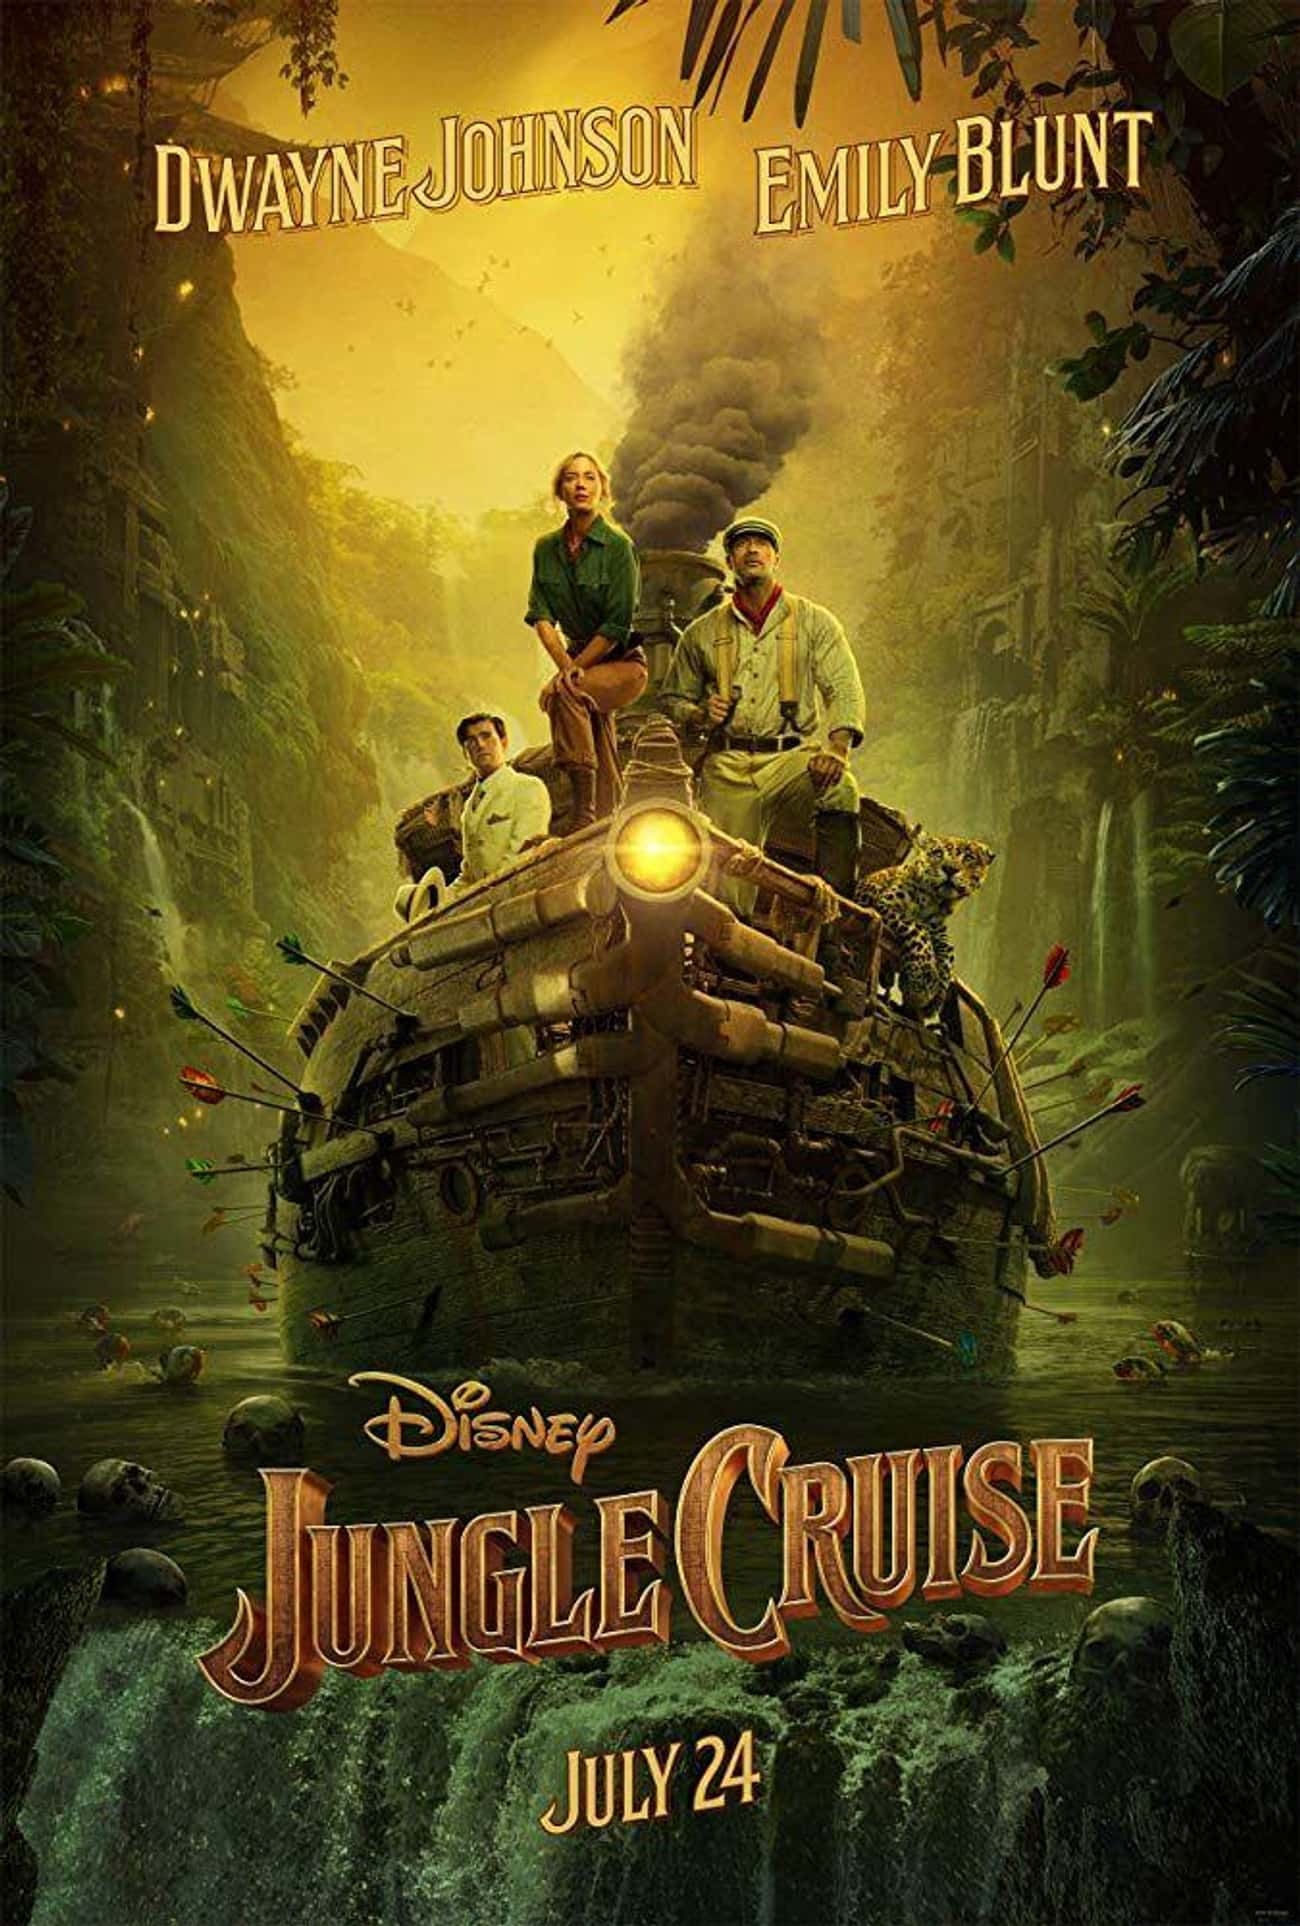 Jungle Cruise is listed (or ranked) 3 on the list The Coolest Movie Posters For 2020 Films